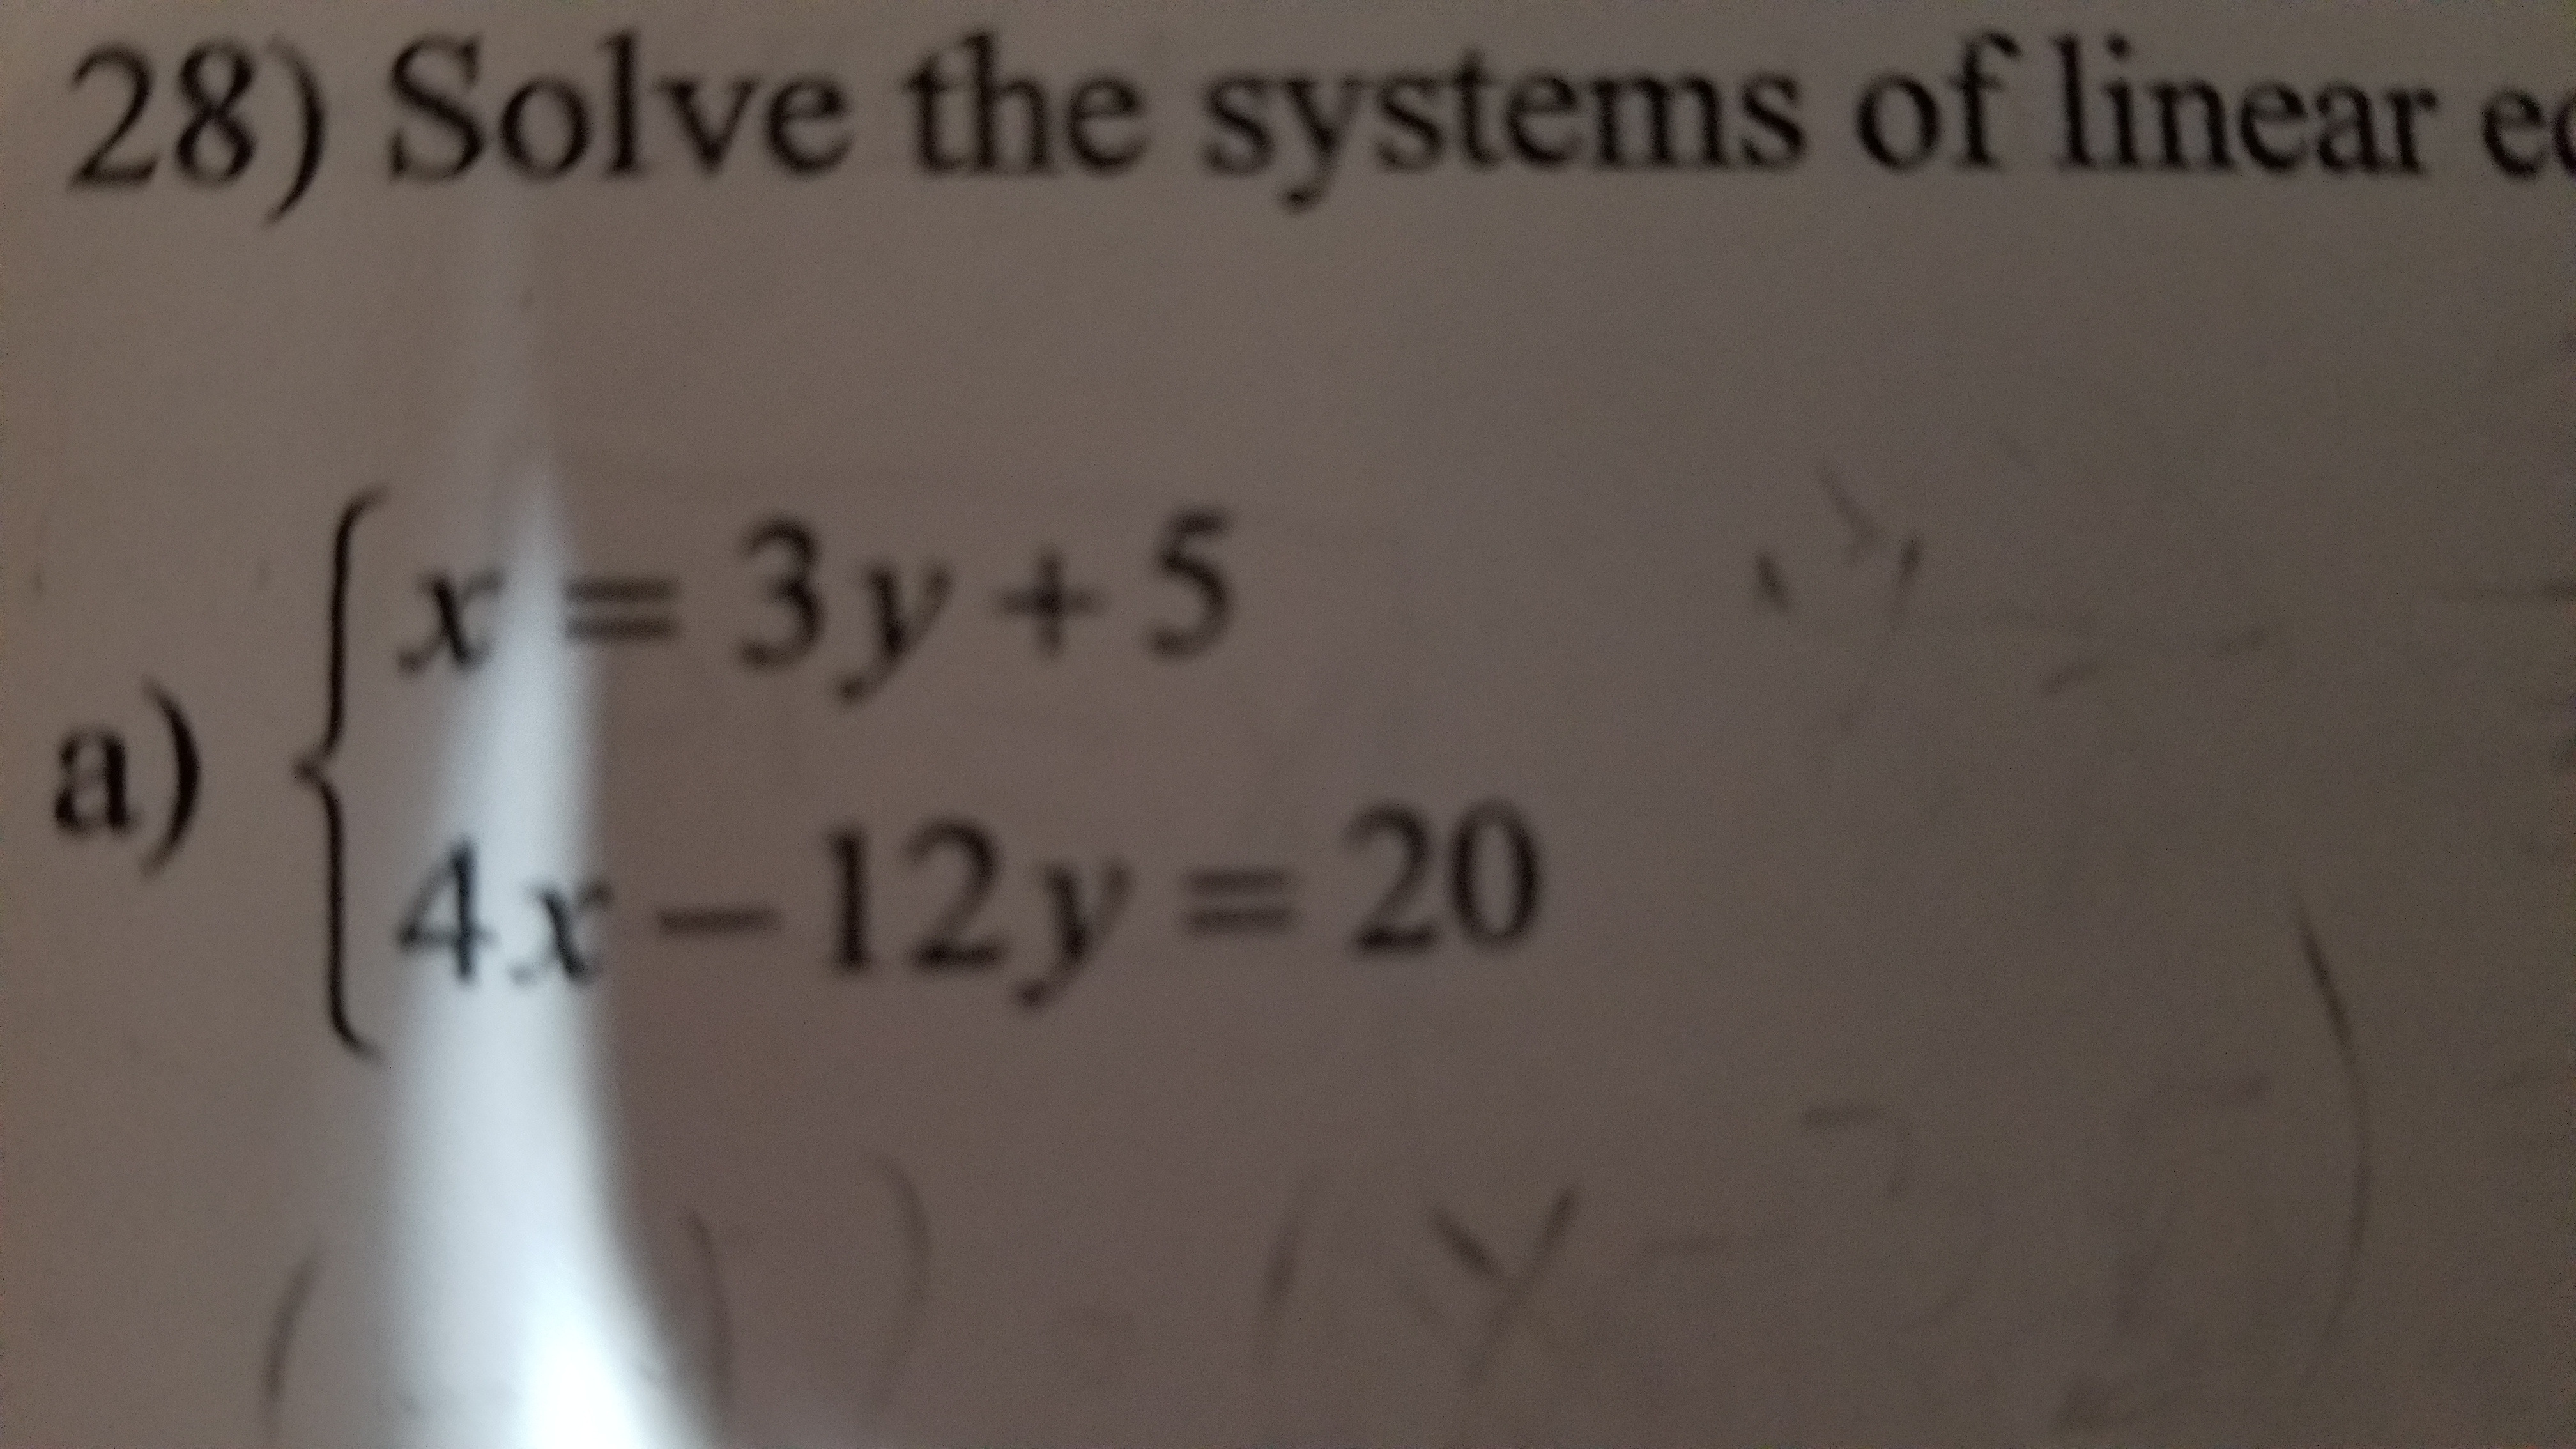 28) Solve the systems of linear e a) 4-12y-20